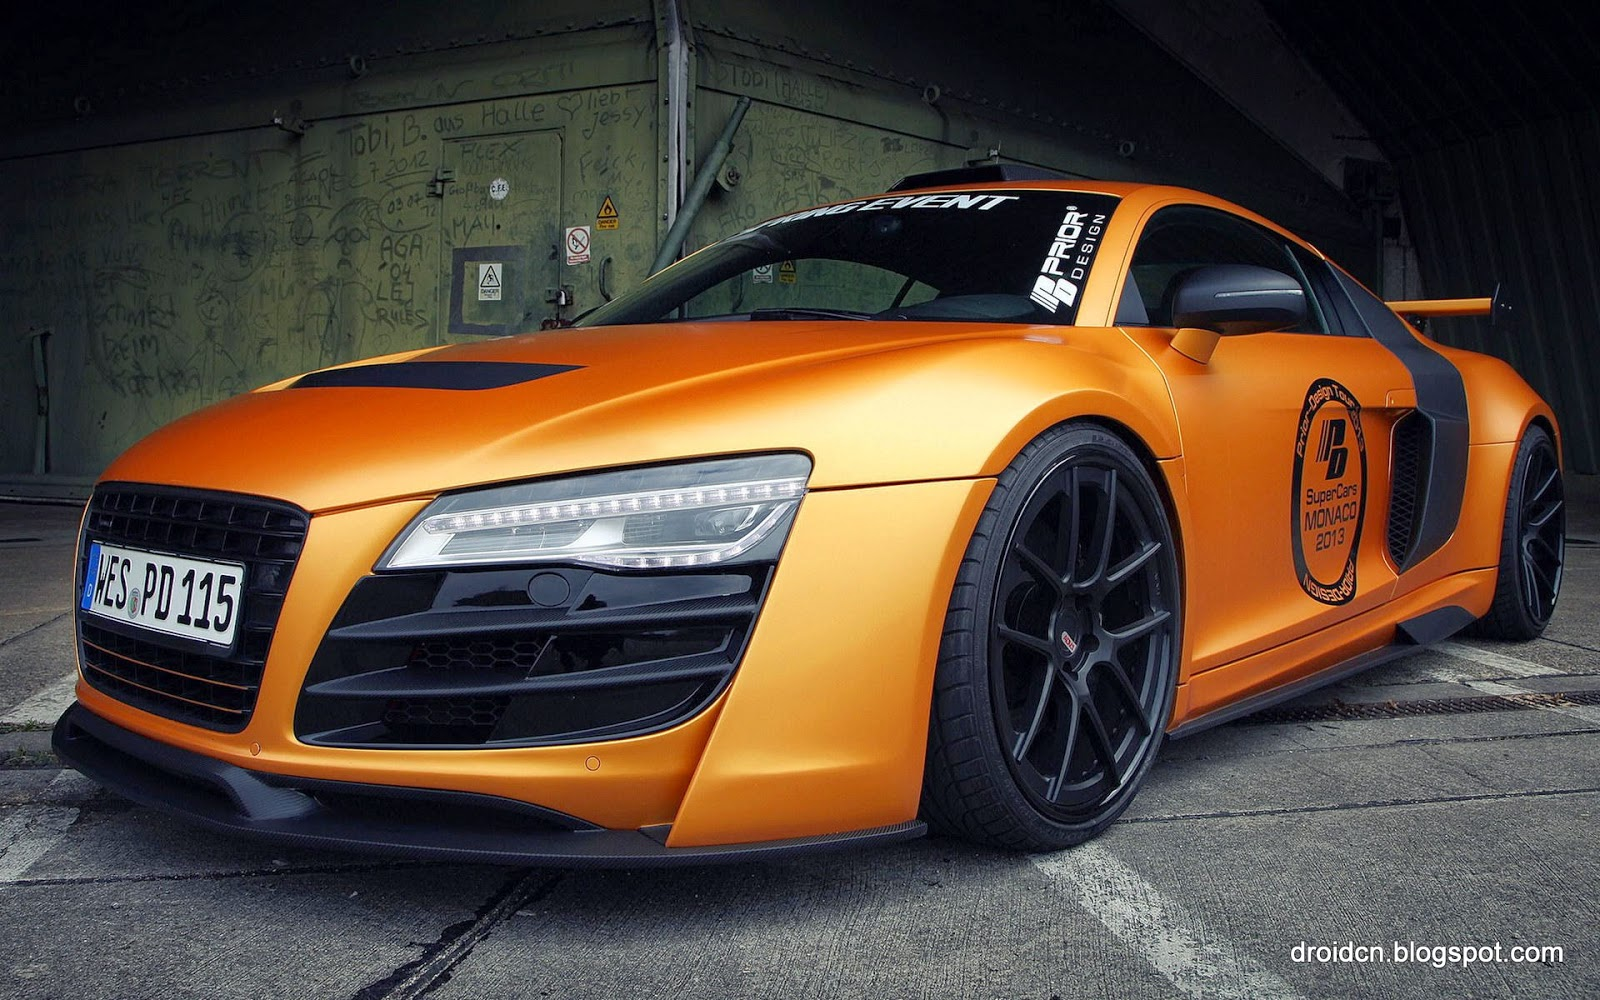 Audi R8 GT850 supercar HD desktop wallpaper | HD Wallpaper